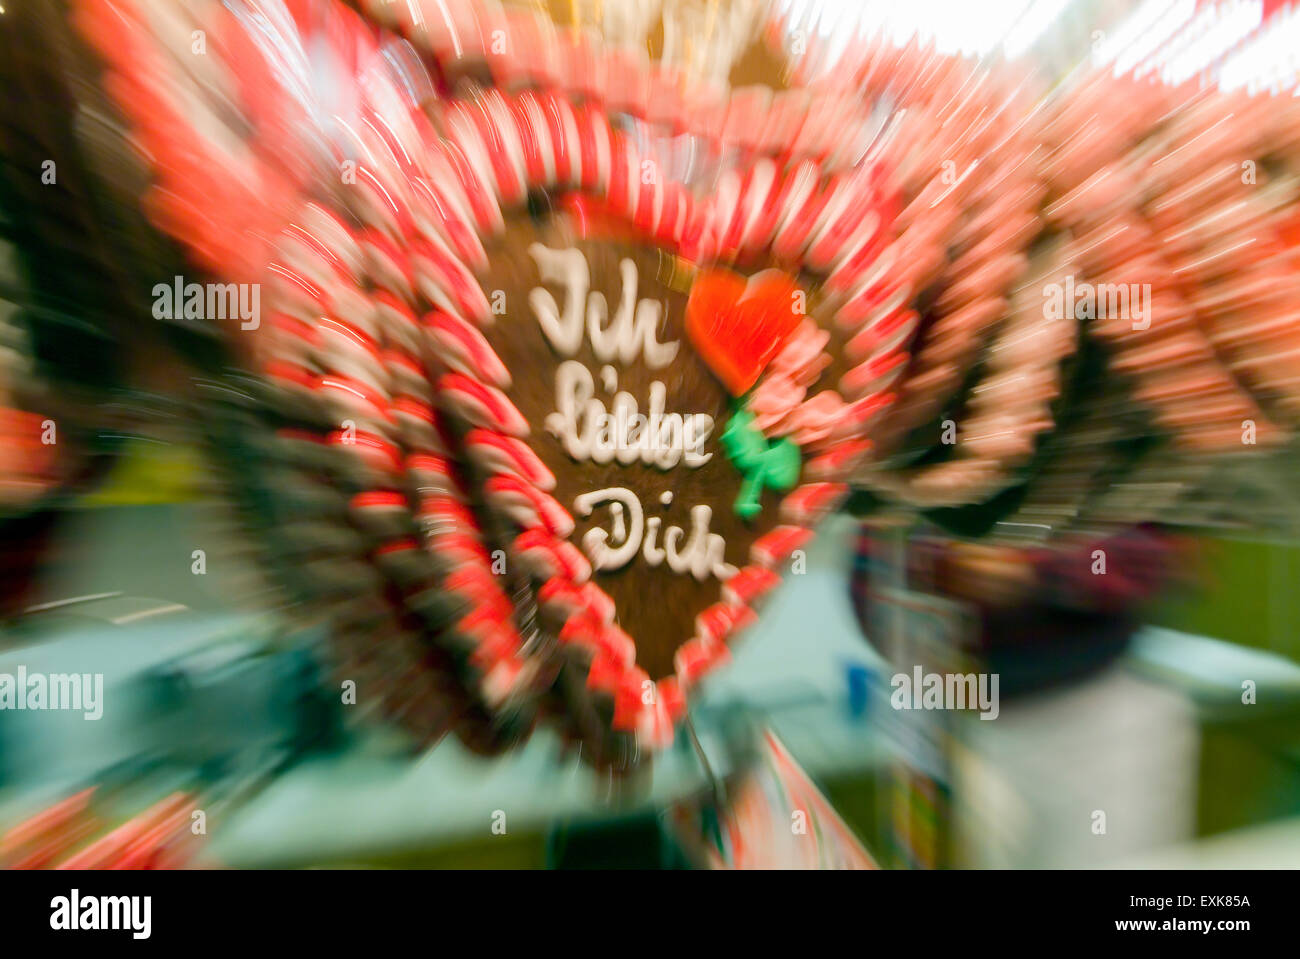 """""""Ich liebe dich"""" means I love you on a gingerbread heart on a christmas market, zoomed and blurred, in Germany Europe Stock Photo"""